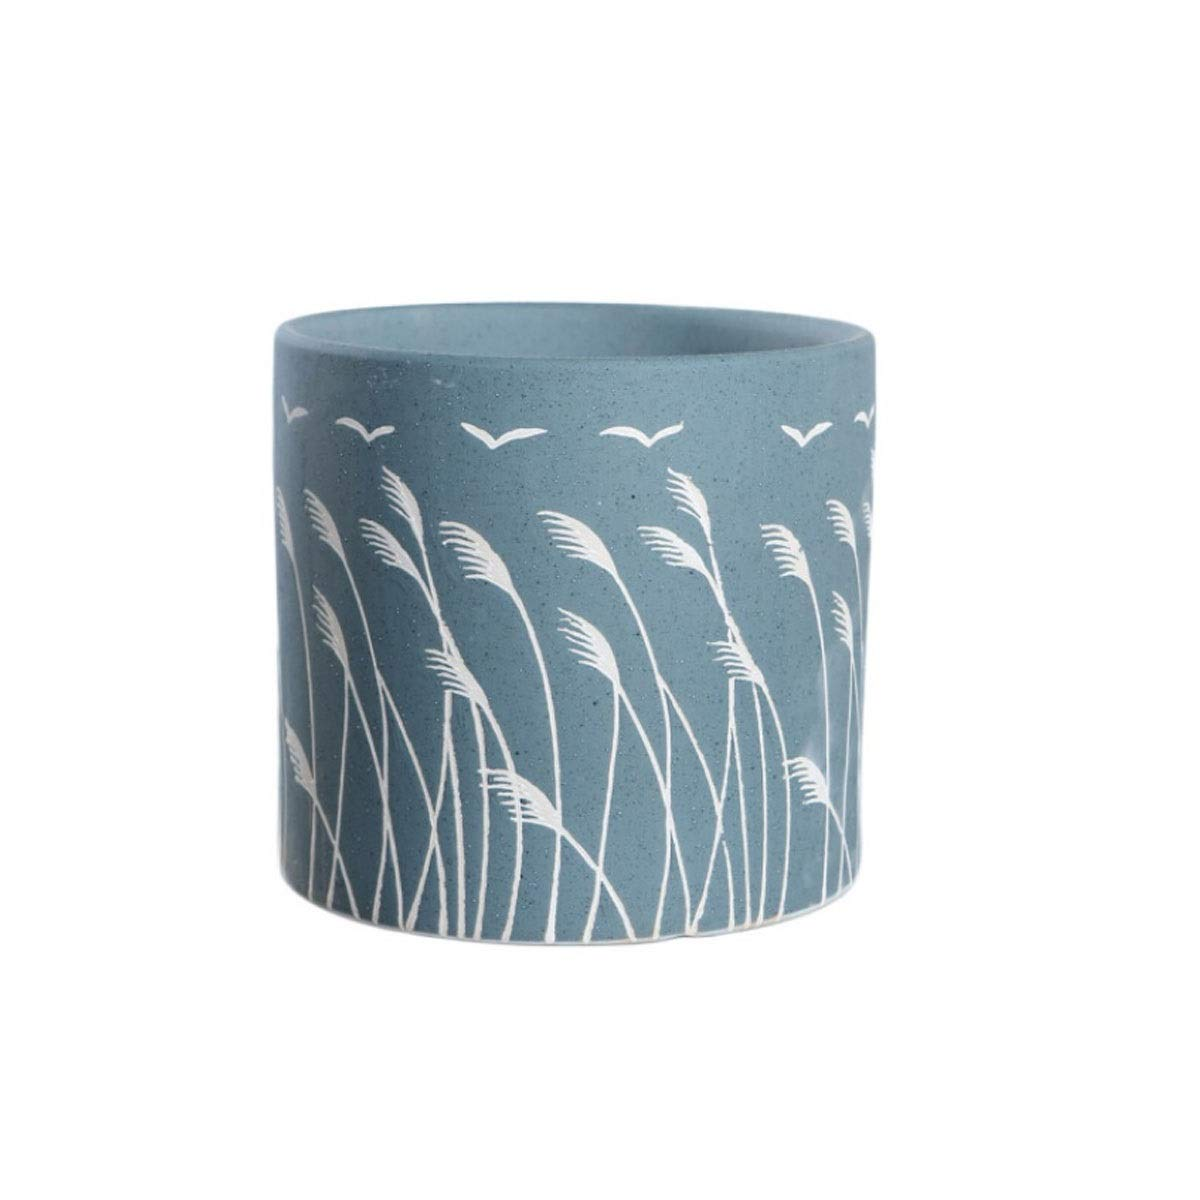 HUIJUNWENTI Ceramic Flower Pot, Fleshy Flower Pot, Ceramic Large Creative Potted Flower Pot, Nordic Style Cylindrical Breathable Office Household Pot Ceramic (Color : Light Blue, Size : Small) by HUIJUNWENTI